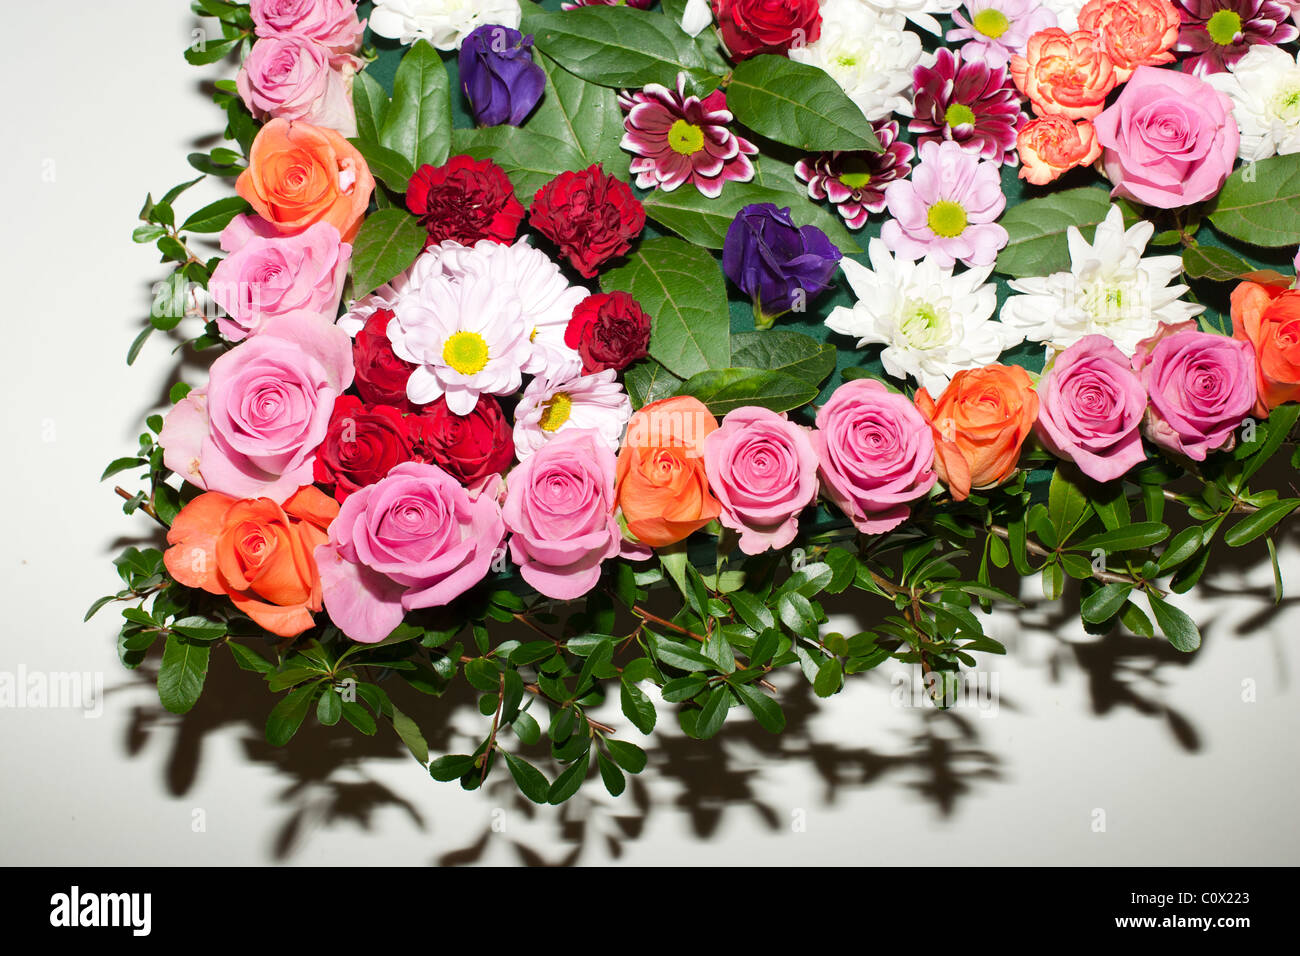 Funeral Flowers Dad Stock Photos Funeral Flowers Dad Stock Images